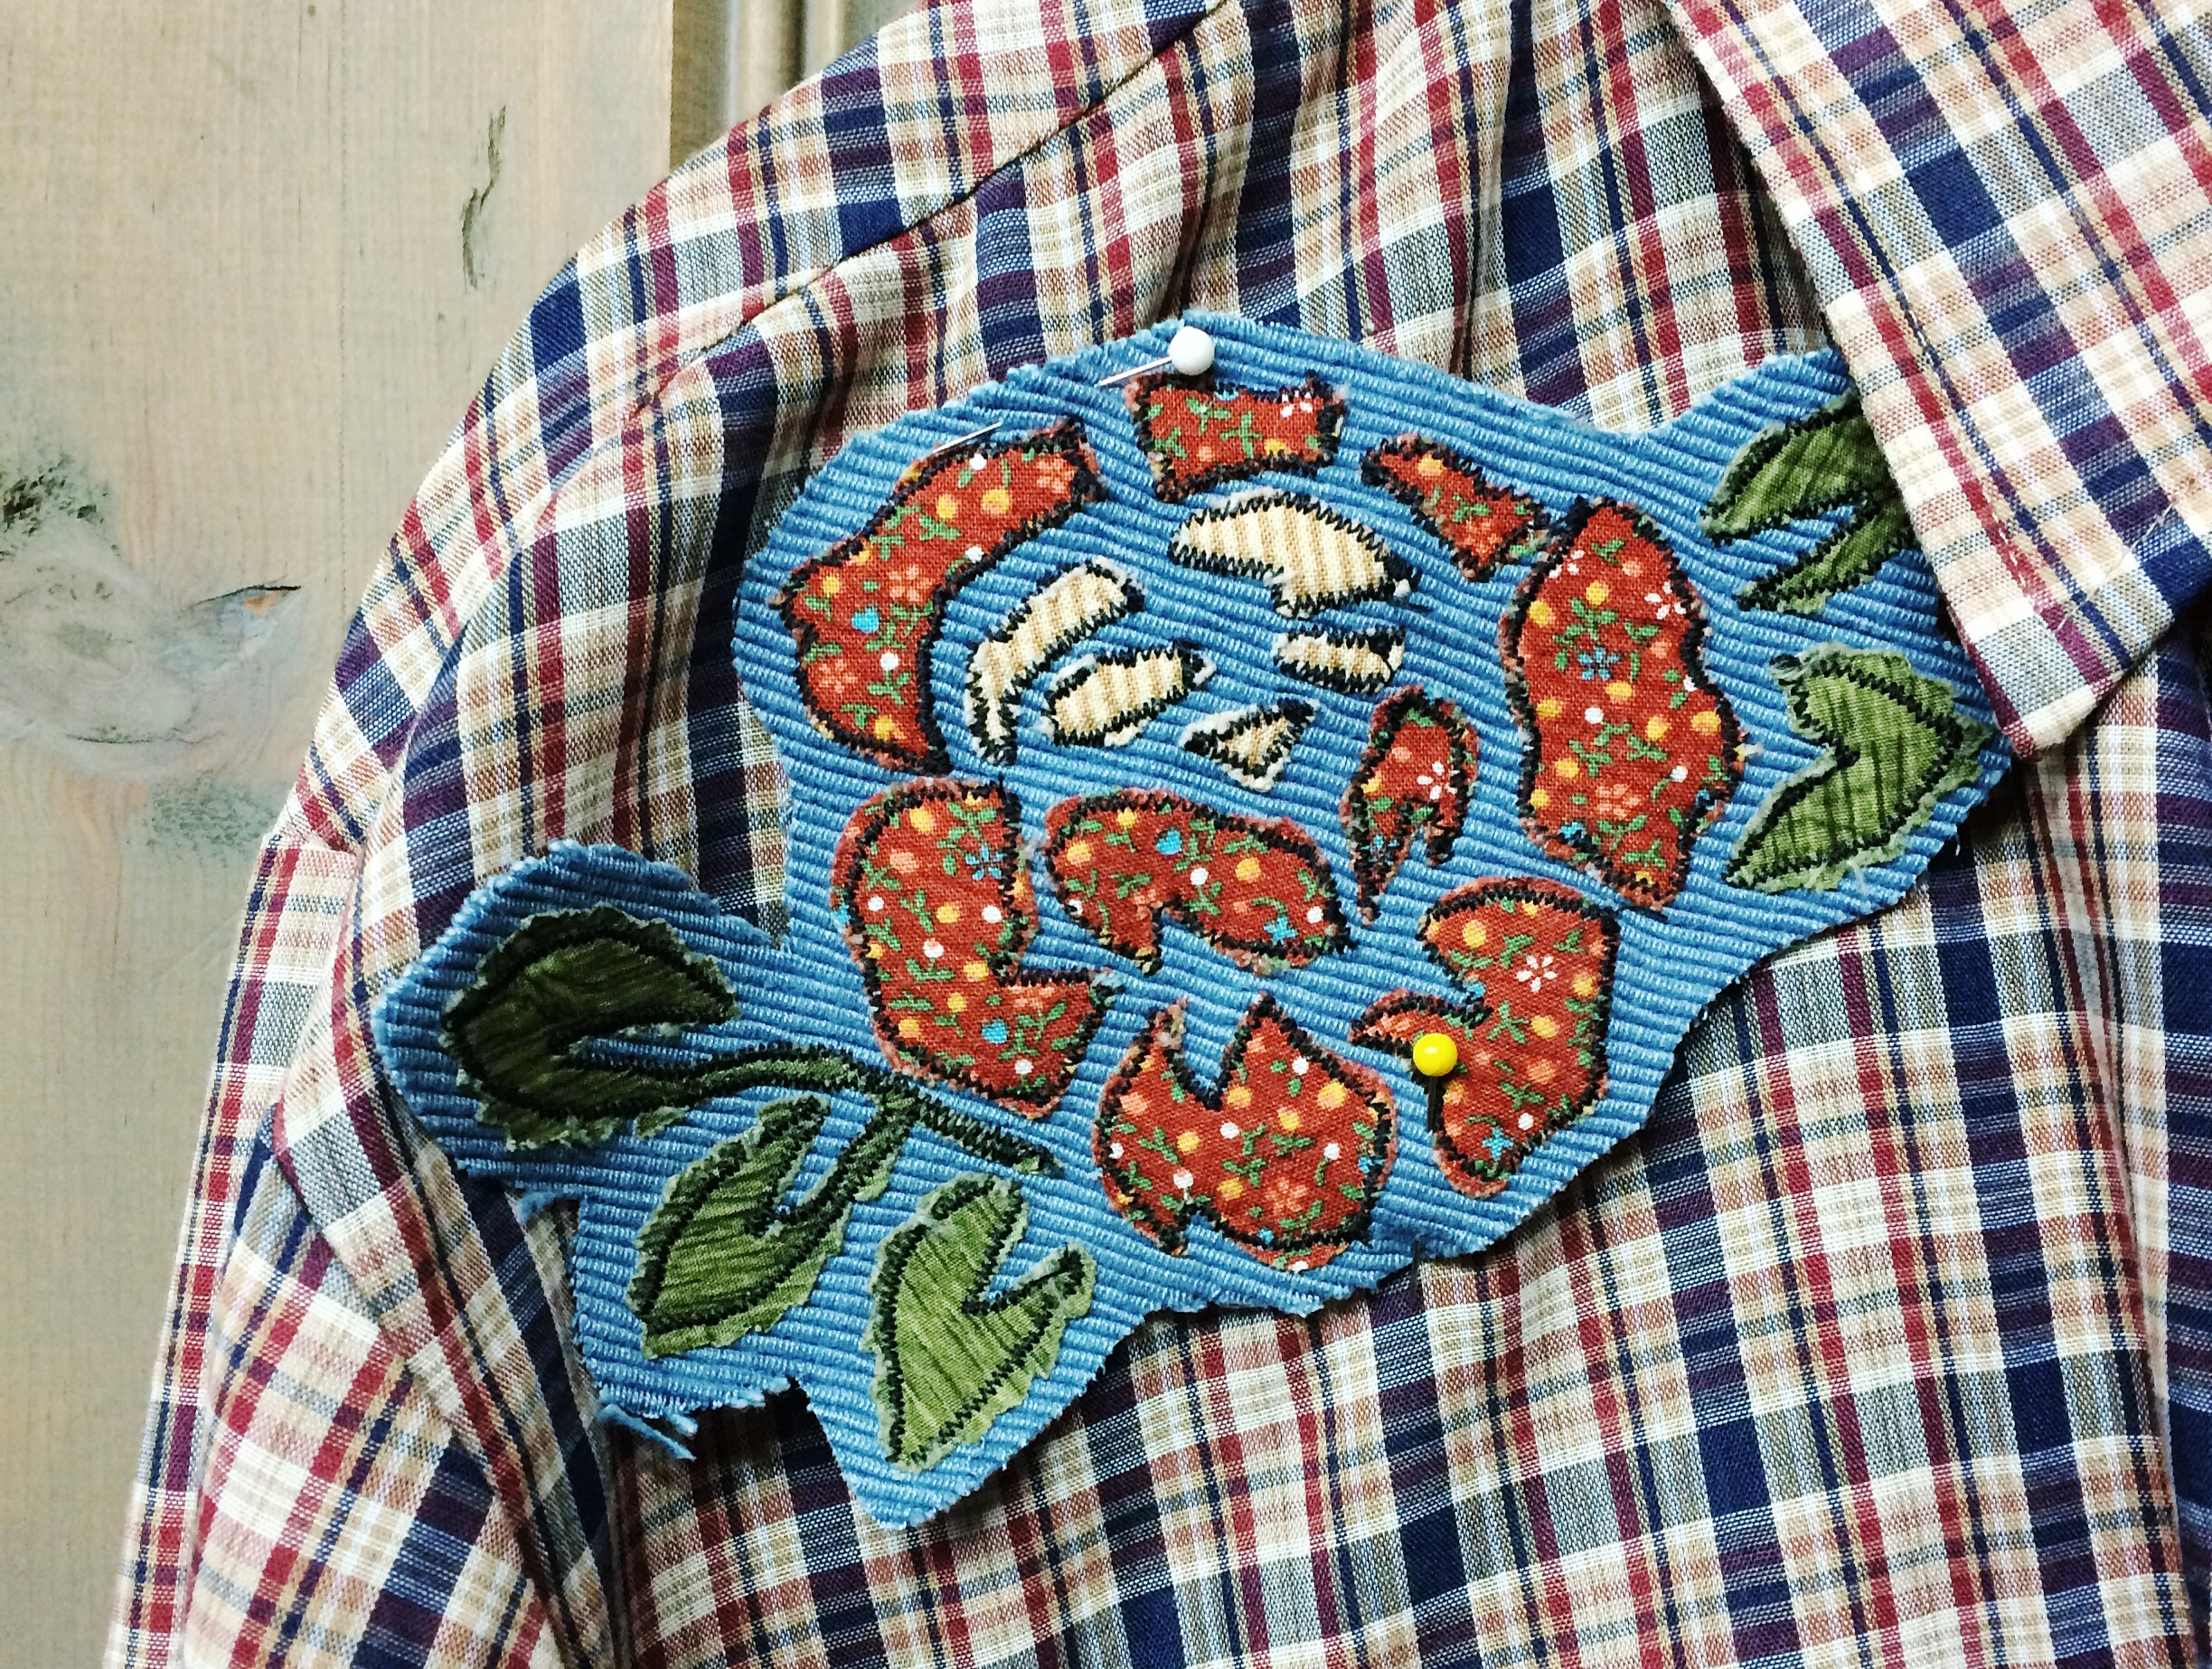 DIY Patch Making:Wednesday, December 13th.6-7:30pm - Come spend the evening making your own custom, vintage fabric, patches to adorn your own garments or to give away as a unique Christmas gift.